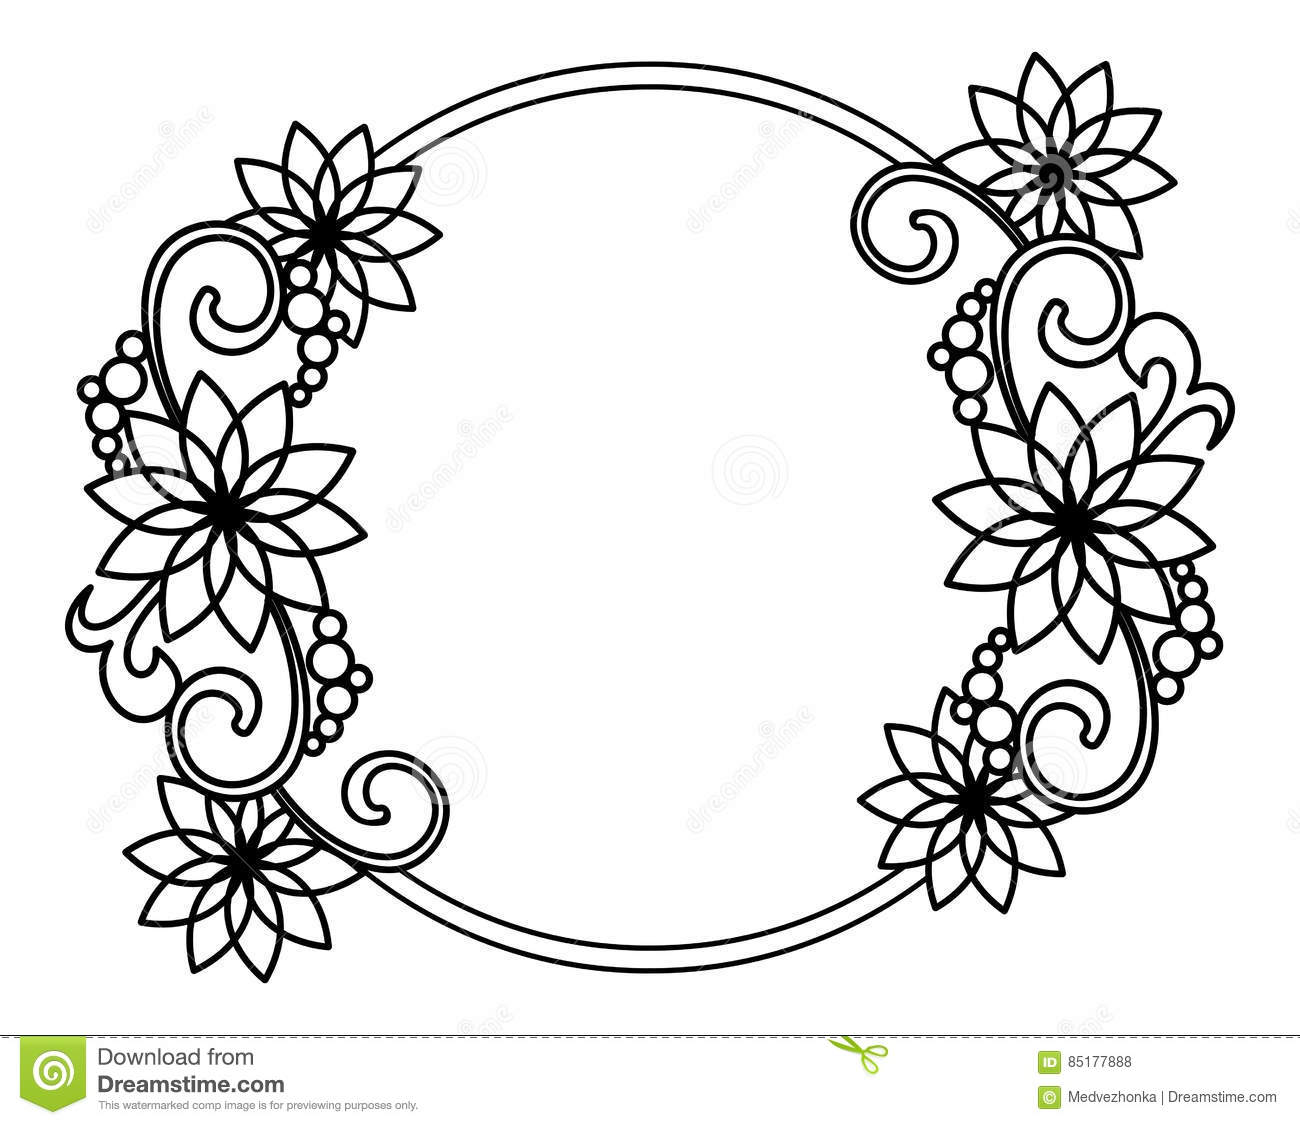 Elegant Round Frame With Contours Of Flowers. Raster Clip Art. Stock.